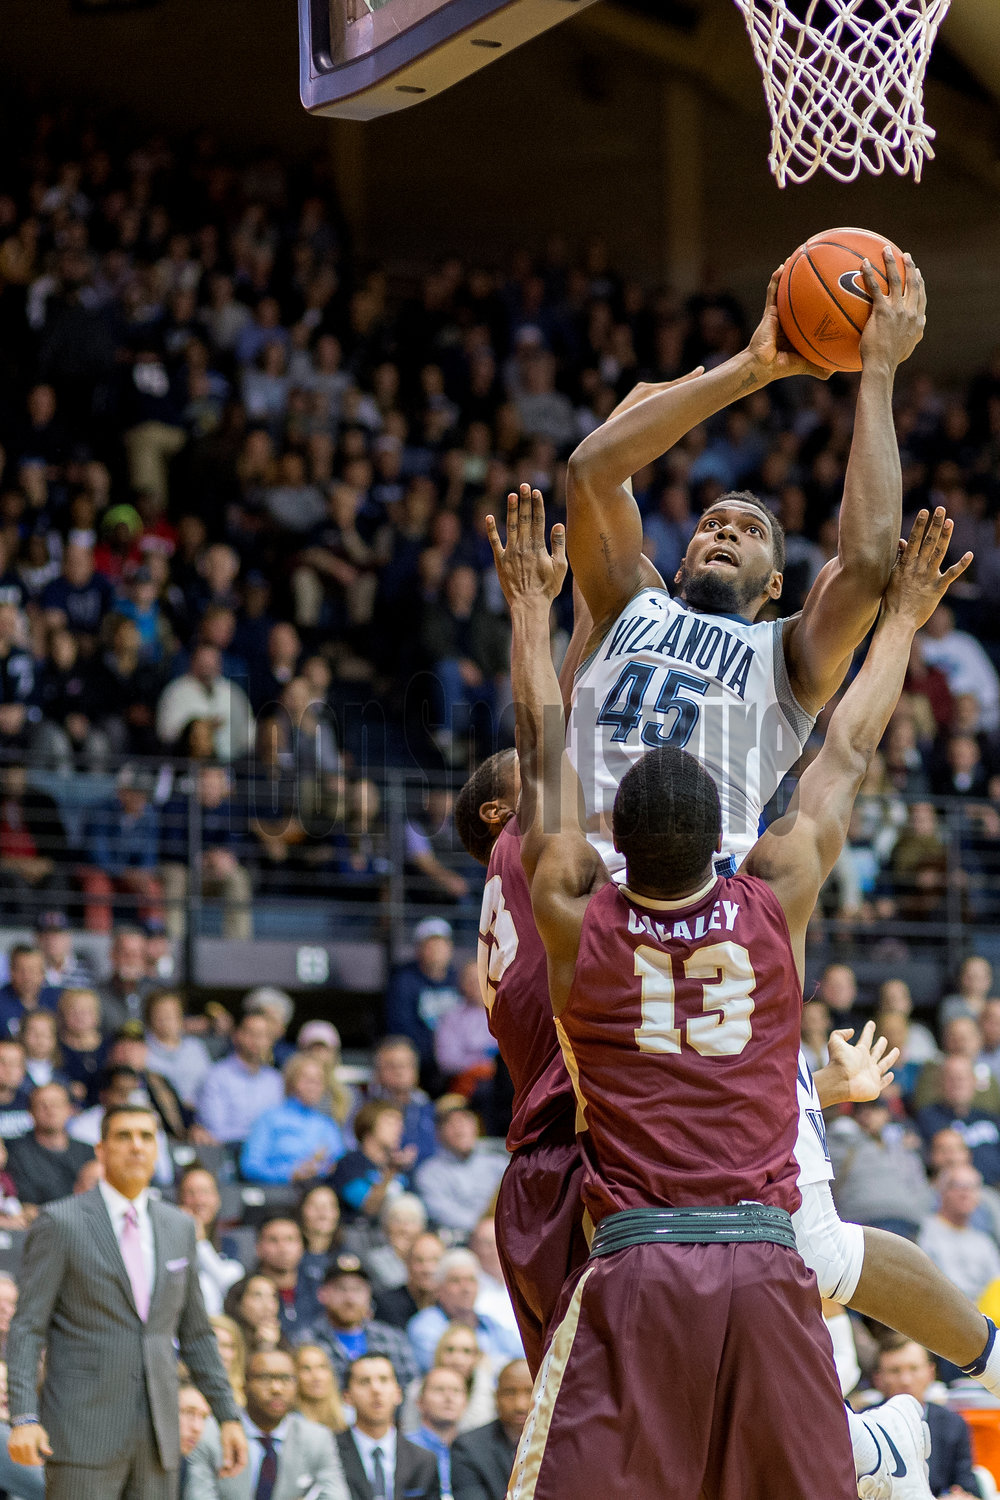 VILLANOVA, PA - NOVEMBER 23: Villanova Wildcats forward Darryl Reynolds (45) leaps over his defenders ready for the basket during the game between the Charleston Cougars and the Villanova Wildcats on November 23, 2016 at the Pavilion in Villanova PA. (Photo by Gavin Baker/Icon Sportswire)